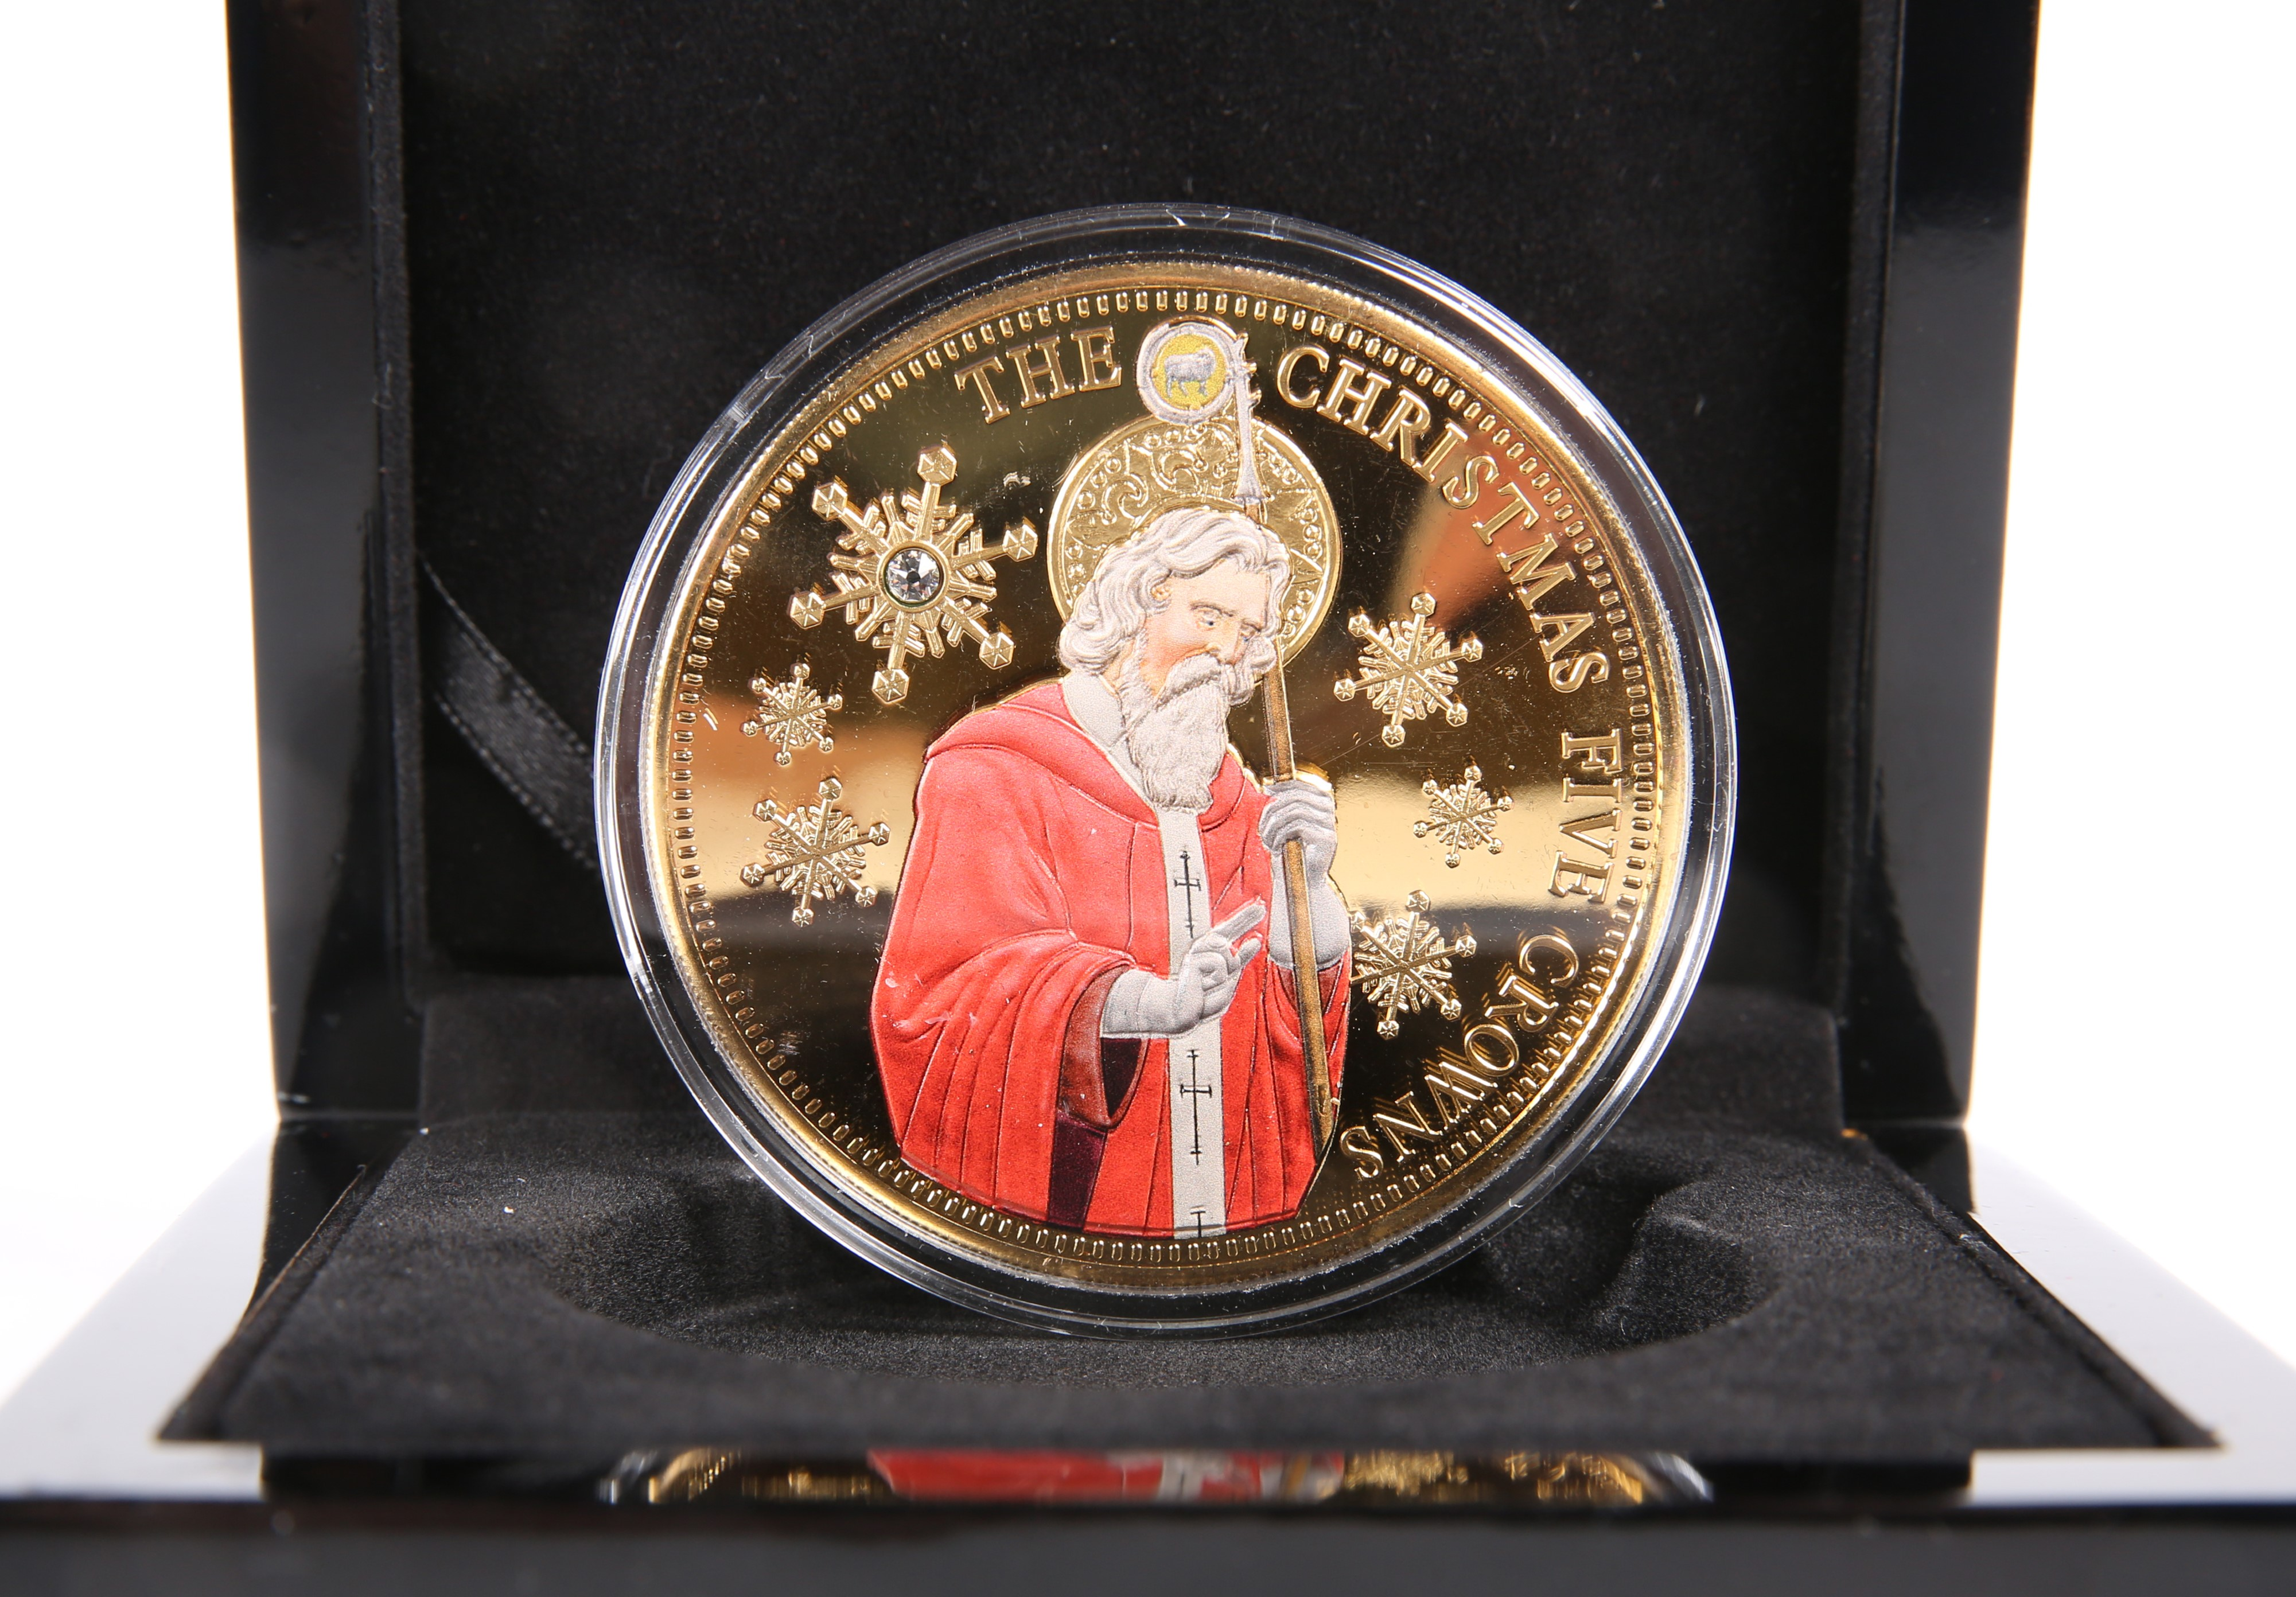 A CHRISTMAS FIVE CROWNS COIN, boxed.